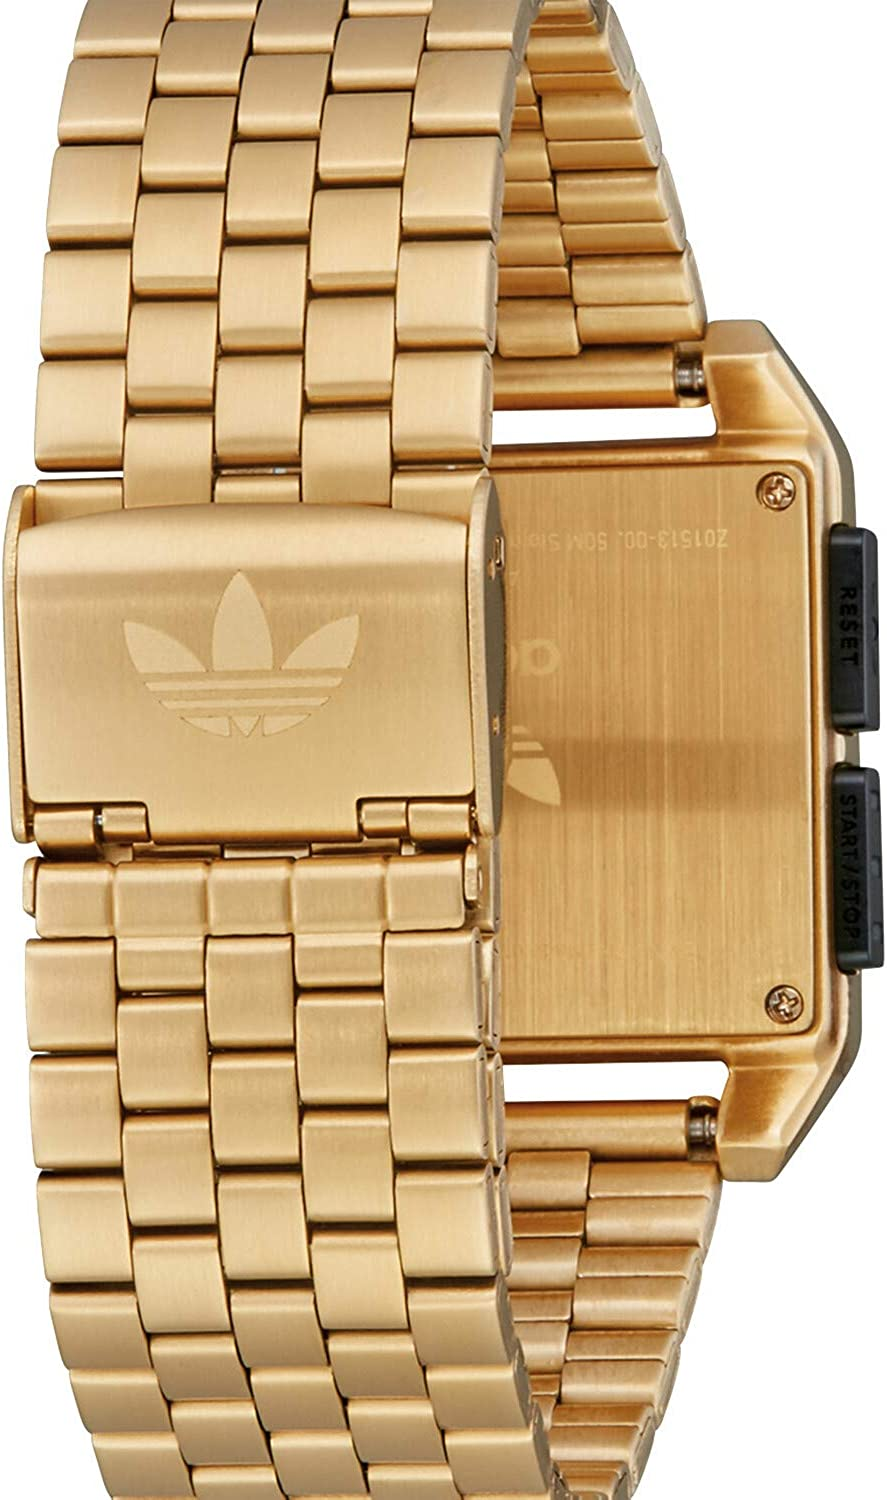 Adidas Watches Archive_M1. Men's 70's Style Stainless Steel Digital Watch with 5 Link Bracelet (36 mm). Gold/Black